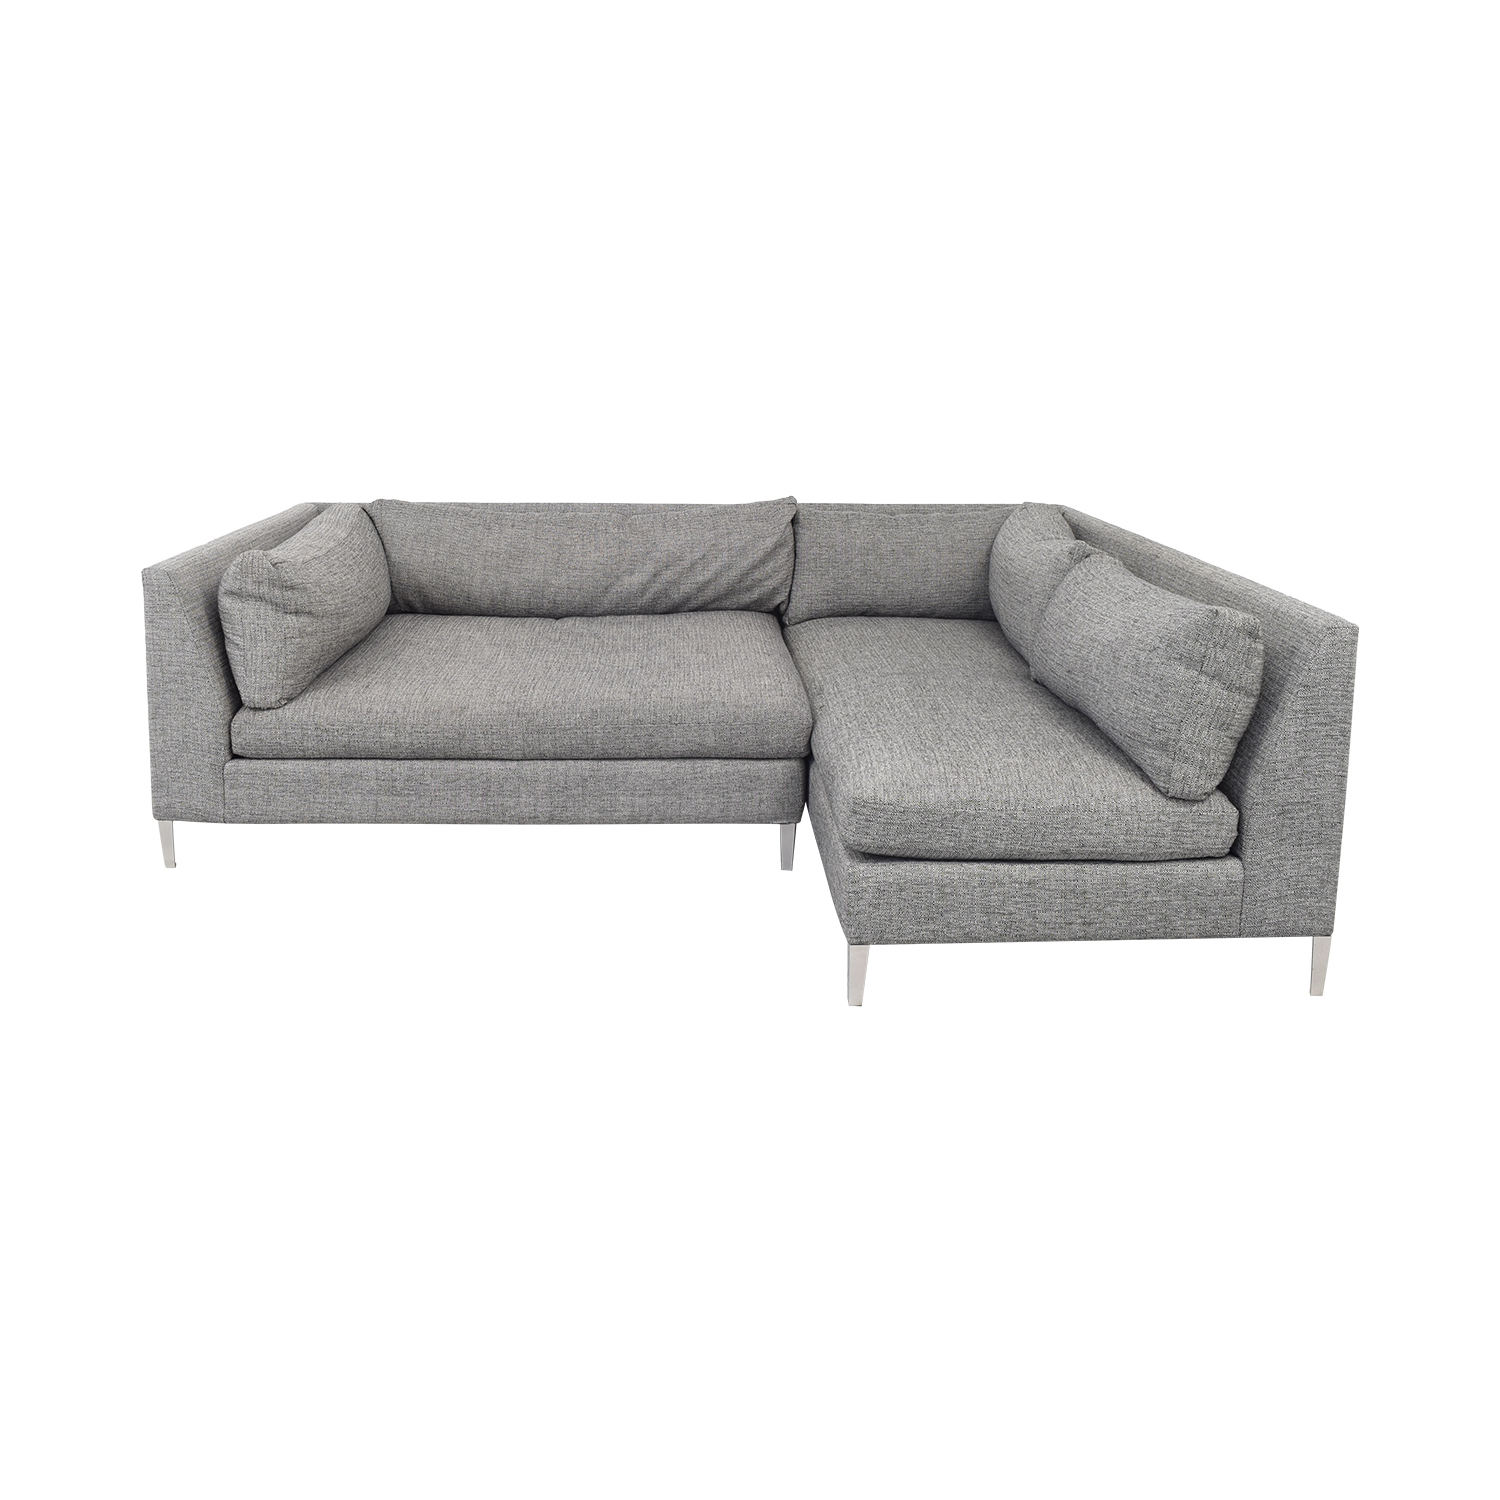 CB2 CB2 Two Piece Sectional Sofa with Chaise on sale